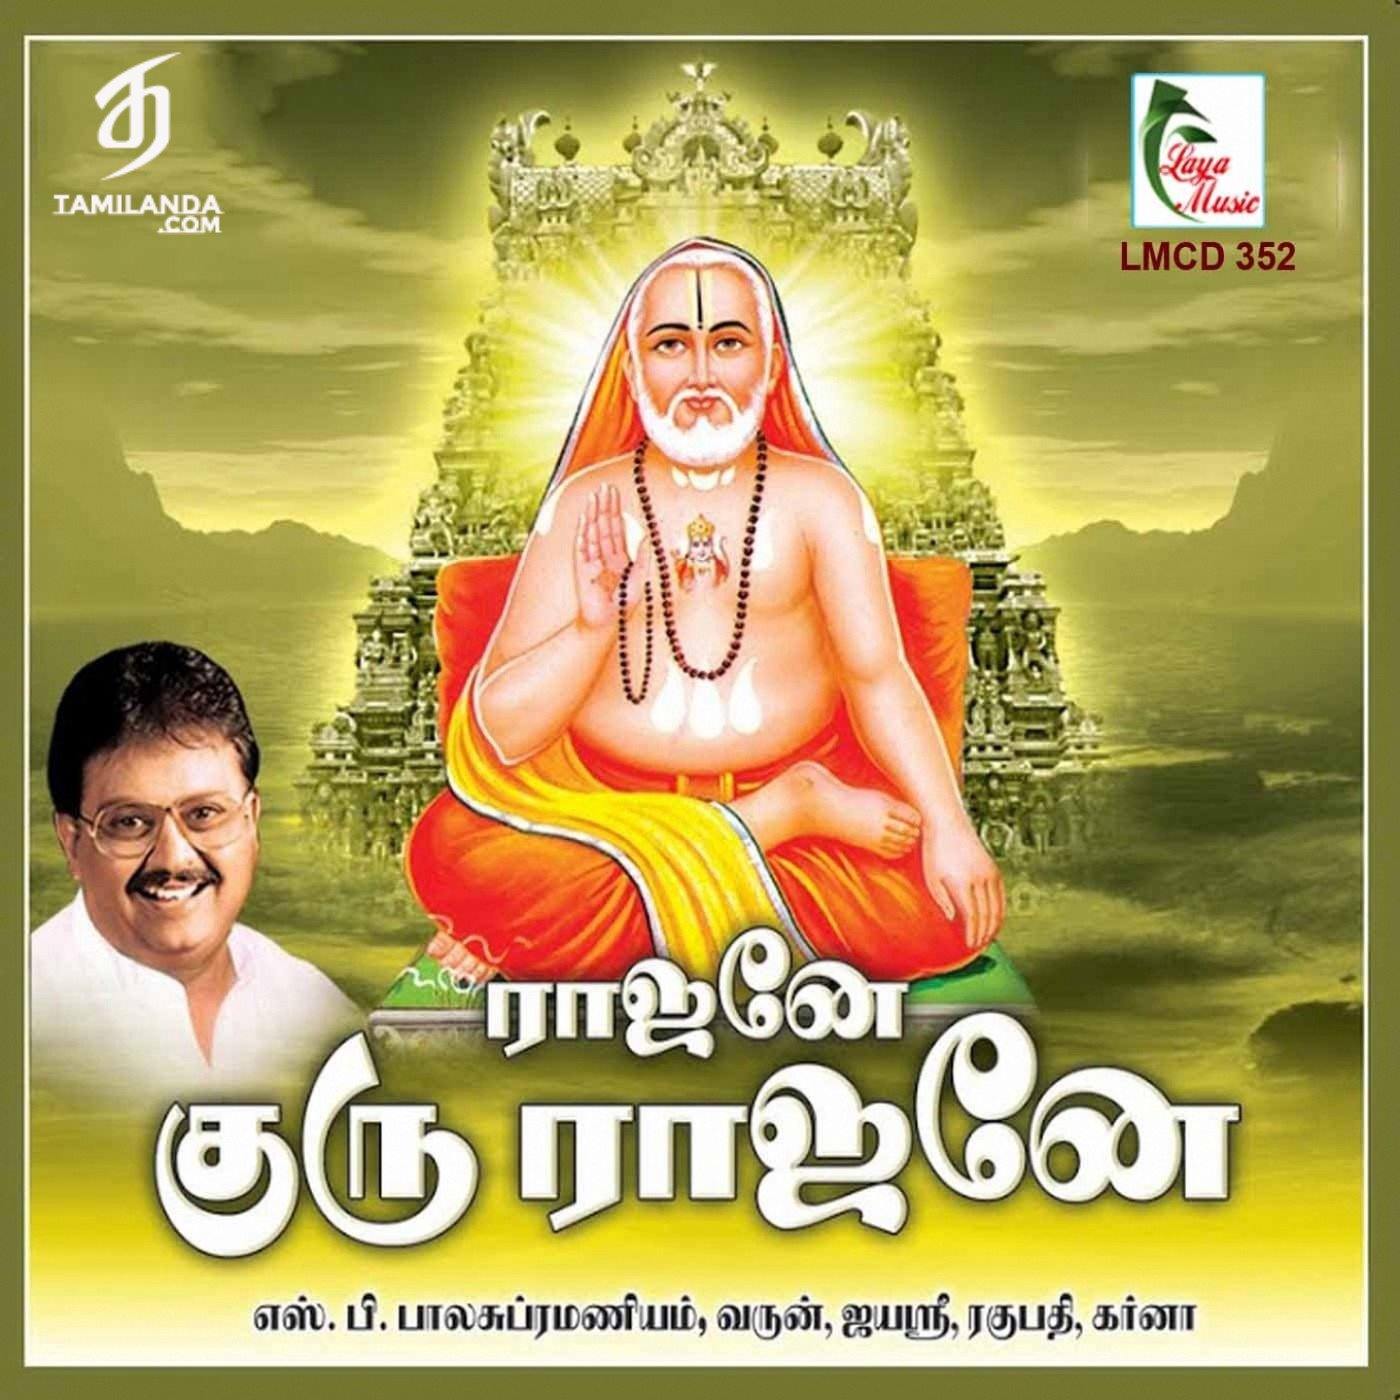 Rajane Guru Rajane Devotional FLAC Songs [Tamil]